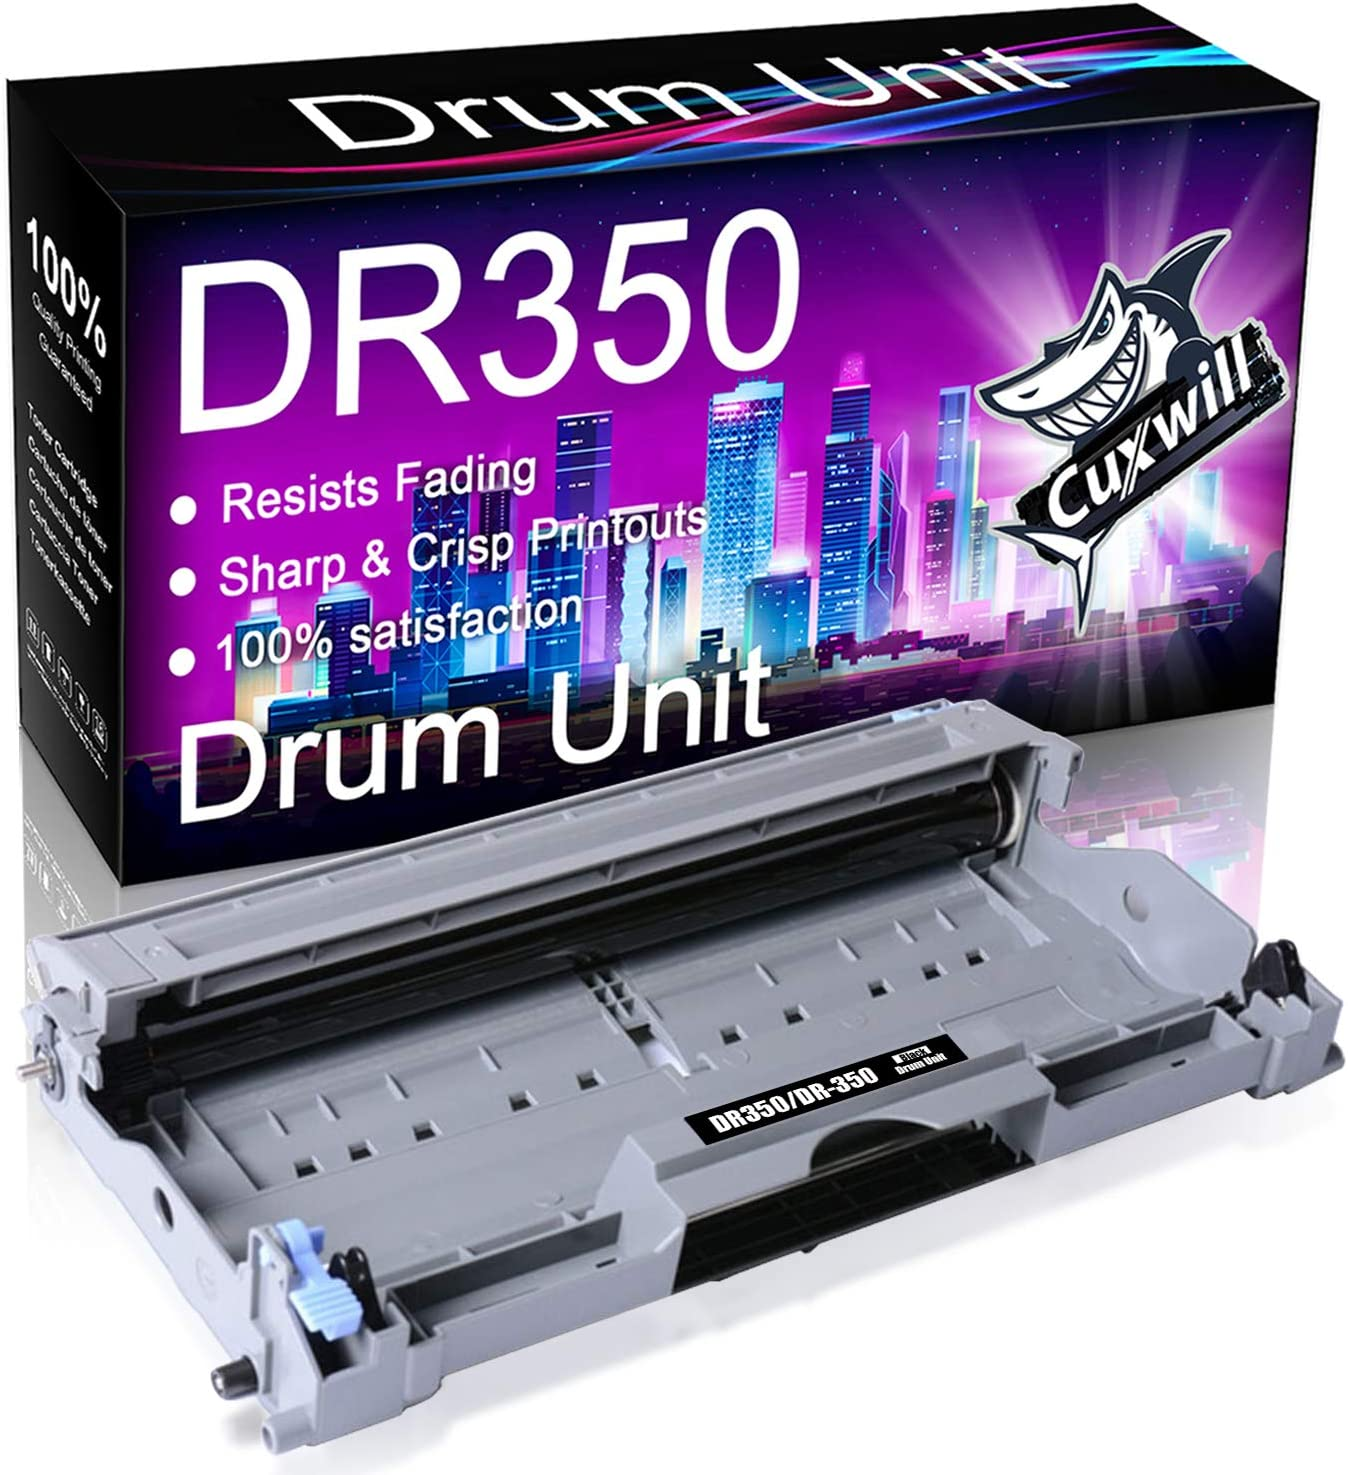 Cuxwill Compatible Drum Unit Replacement for Brother DR350 DR-350 to use with HL-2040 HL-2070N MFC-7820N MFC-7420 MFC-7220 DCP-7020 MFC-7225N HL-2030 Intellifax 2820 Intellifax 2920 Printer (Black)